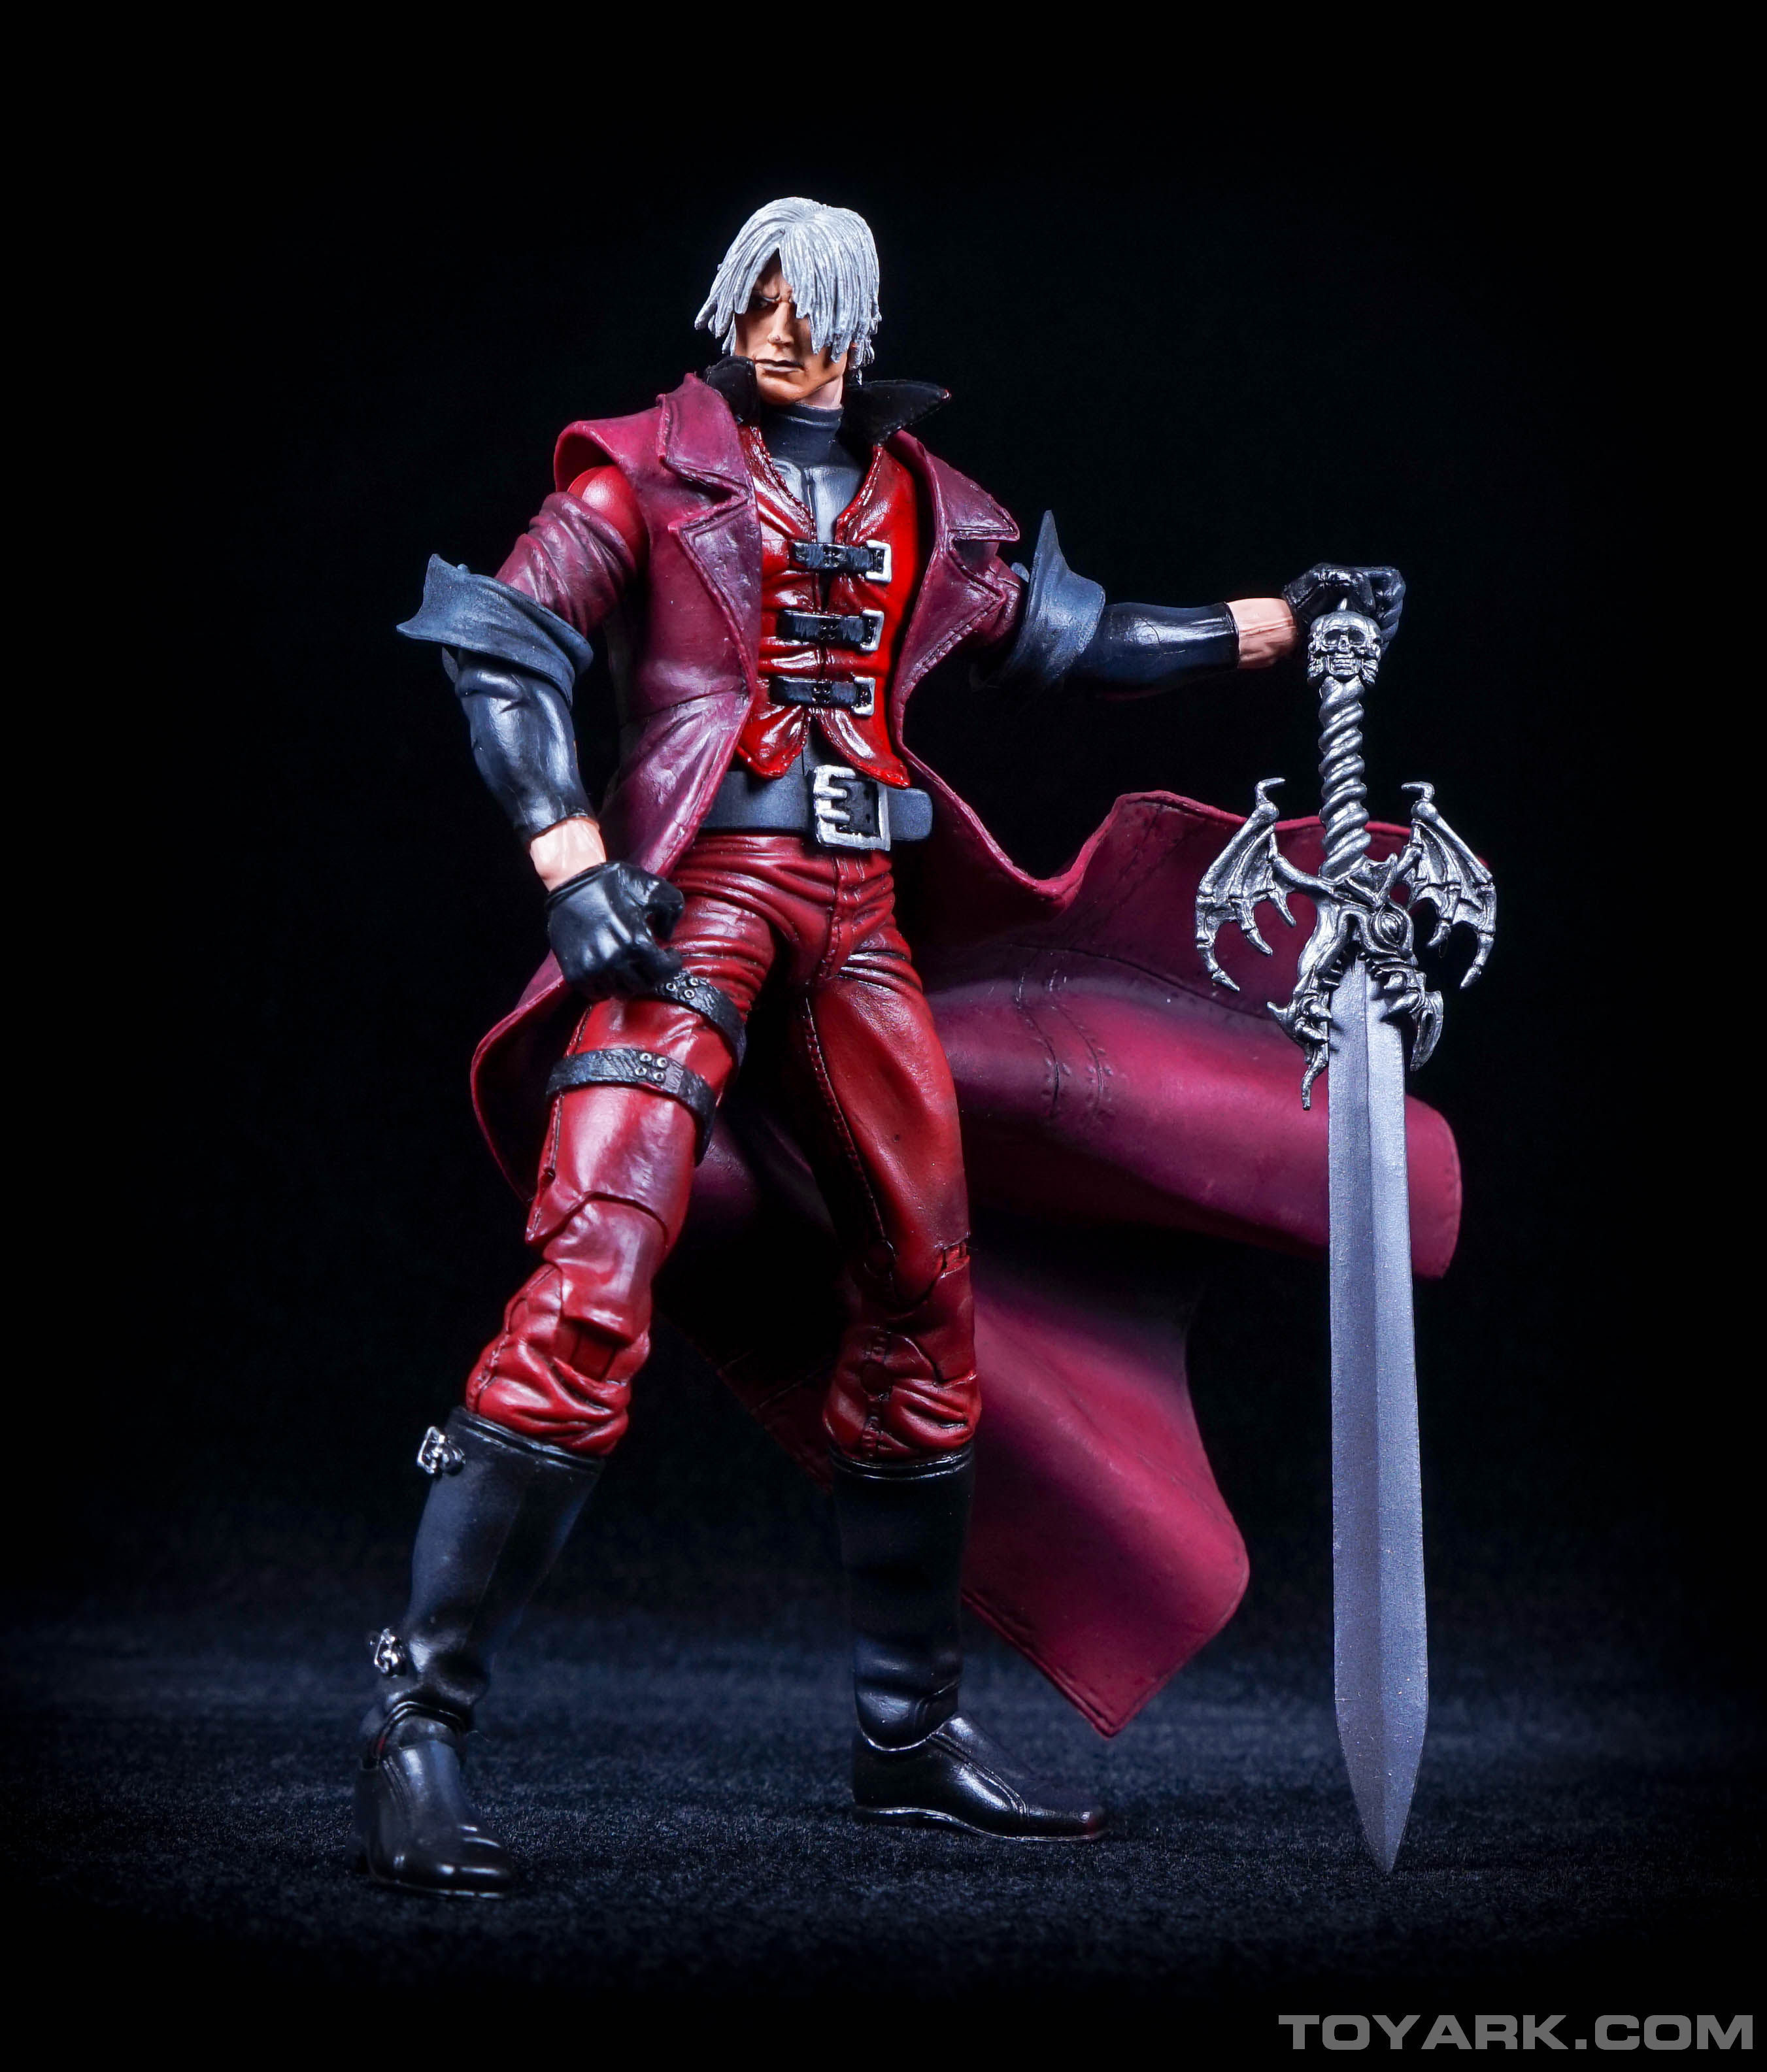 http://news.toyark.com/wp-content/uploads/sites/4/2015/06/NECA-Devil-May-Cry-Dante-024.jpg